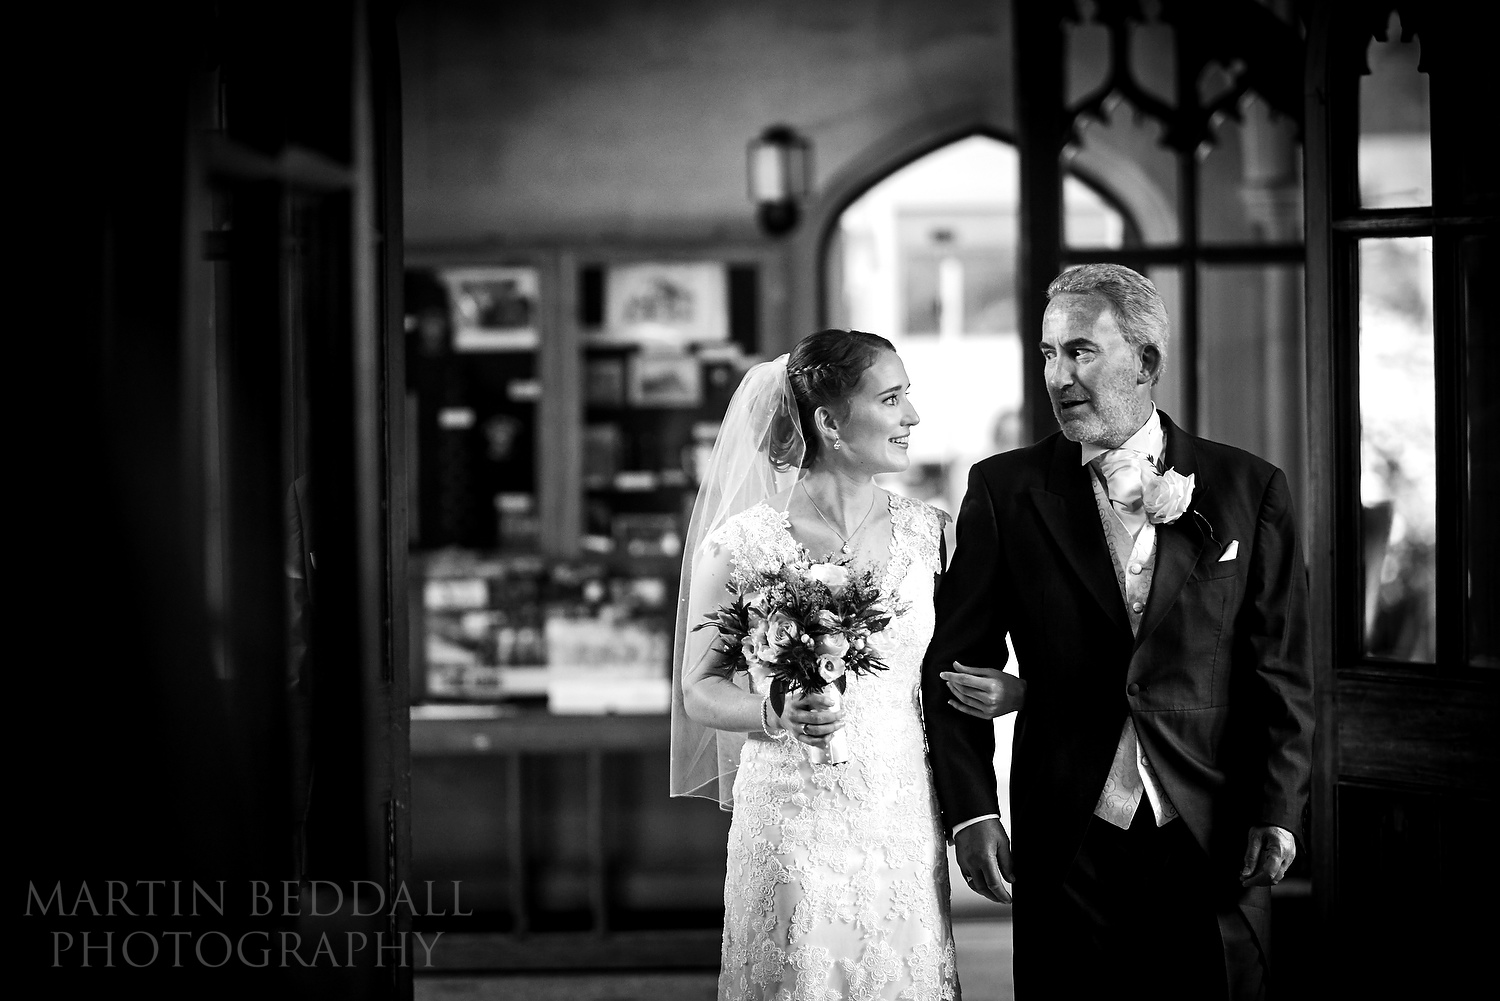 Bride and her father exchange looks before entering The Oxford chapel